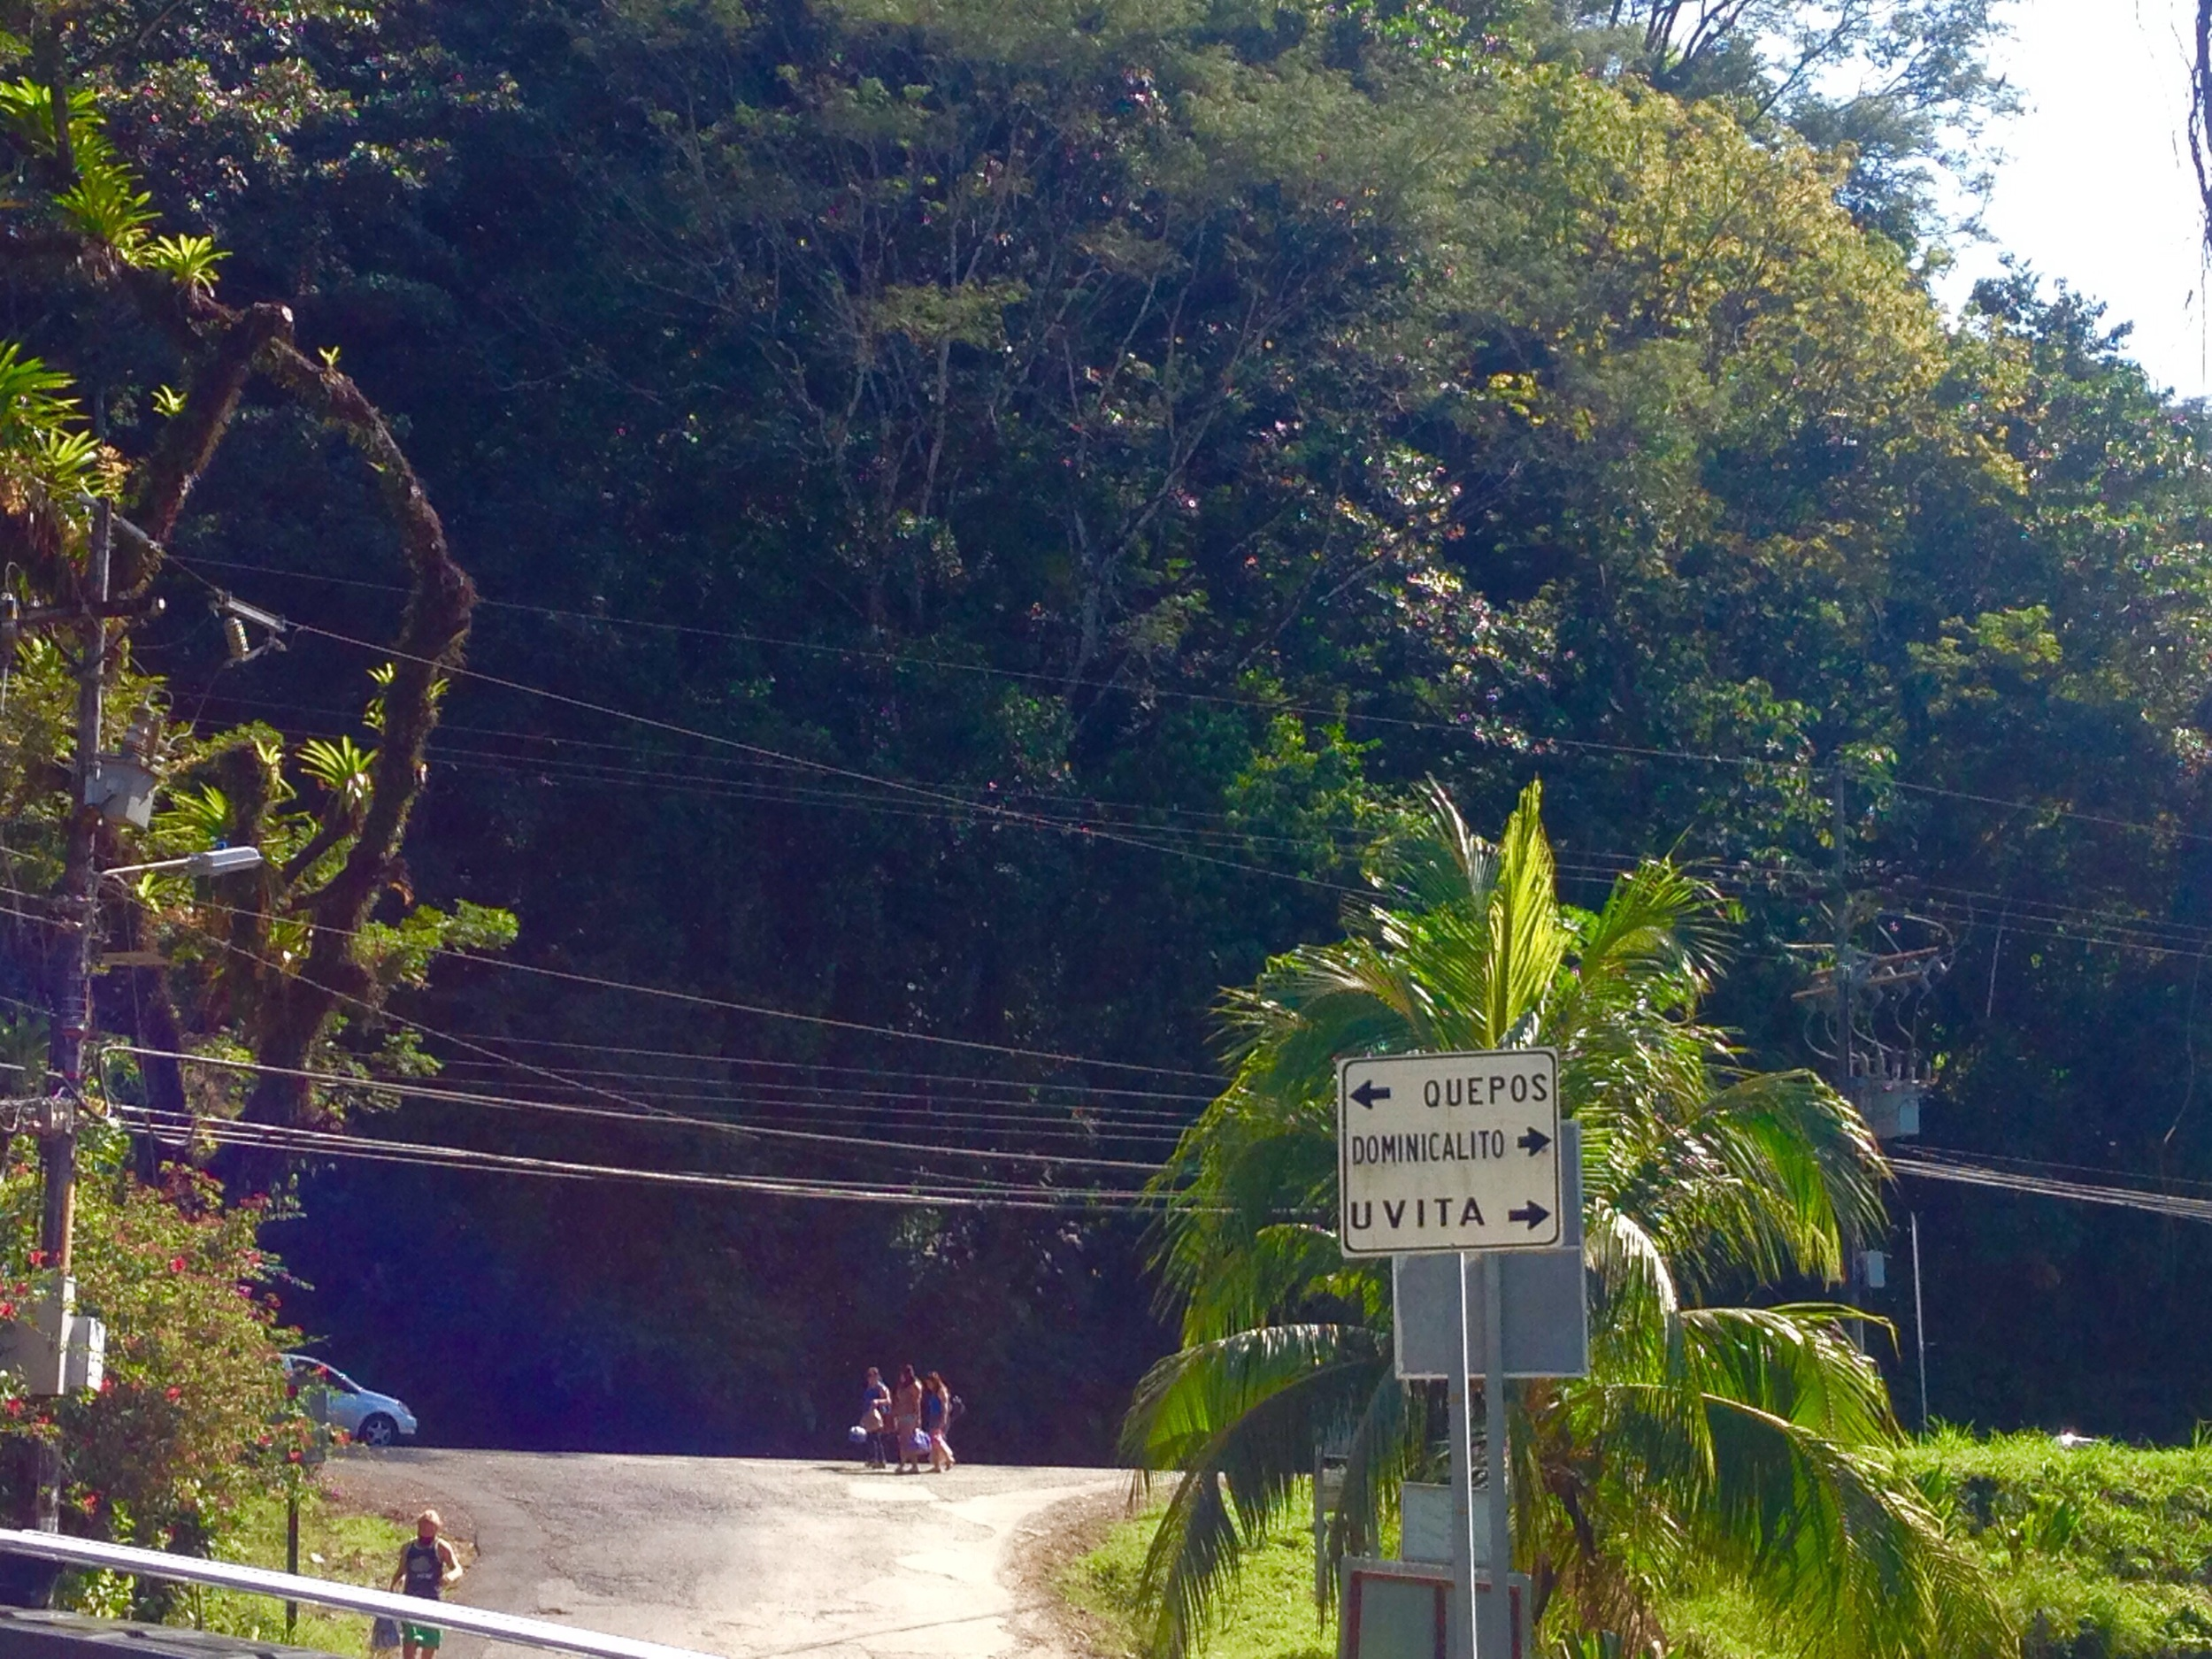 About three - four hours later we arrived in Dominical, Costa Rica, and headed straight for the nearest restaurant.